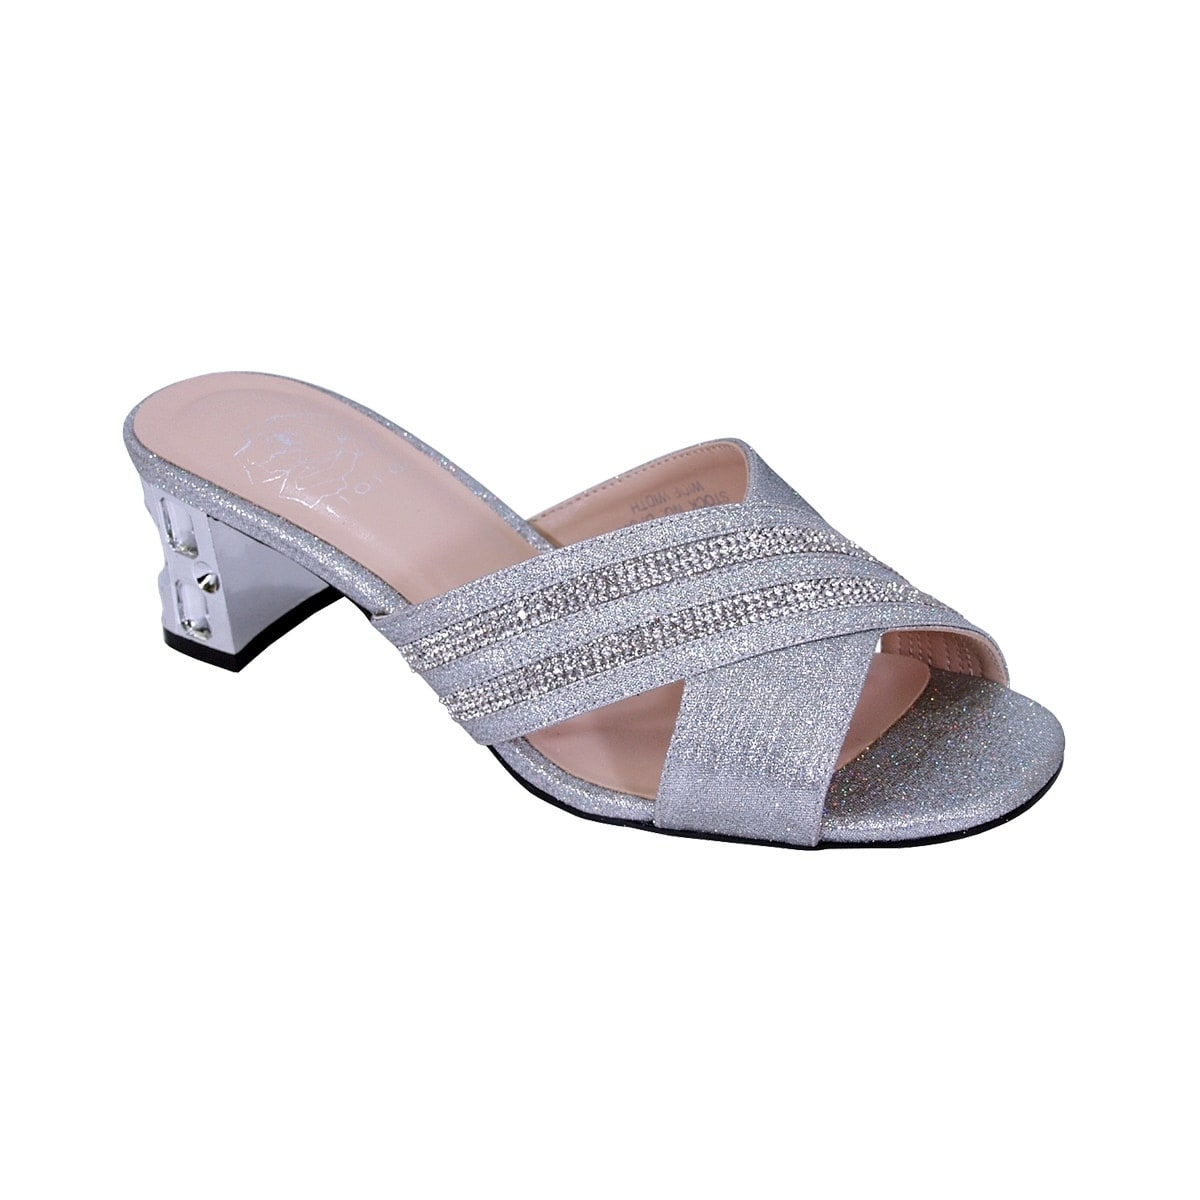 8430d33fa75a Shop FLORAL Kelly Women Extra Wide Width Rhinestone Slip-On Wedge Sandals -  Free Shipping Today - Overstock - 20005013